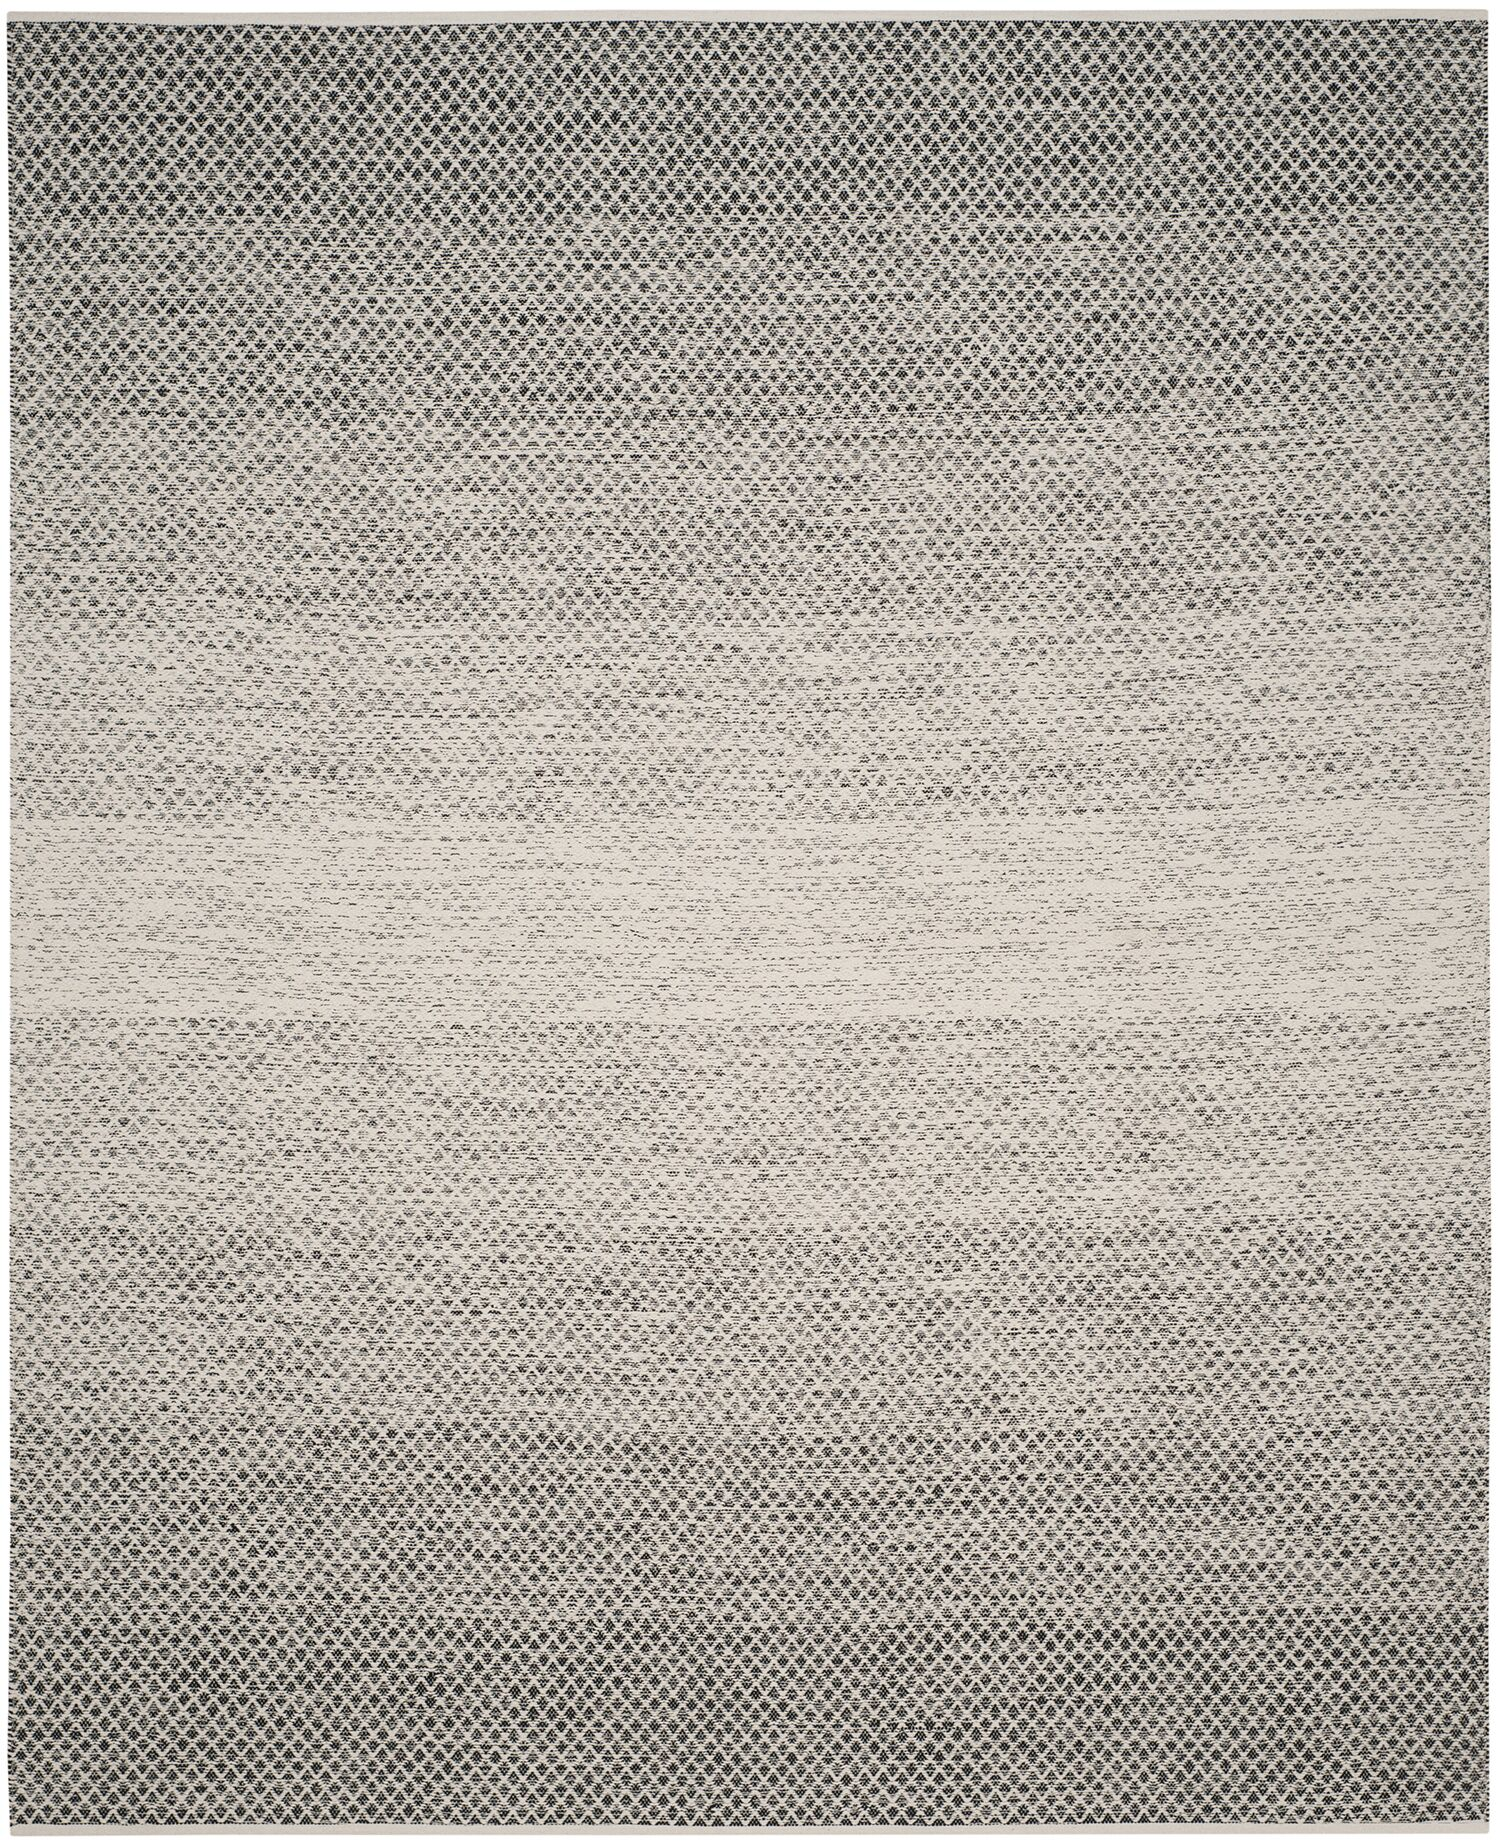 Figuig Hand-Woven Black/Ivory Area Rug Rug Size: Square 6'